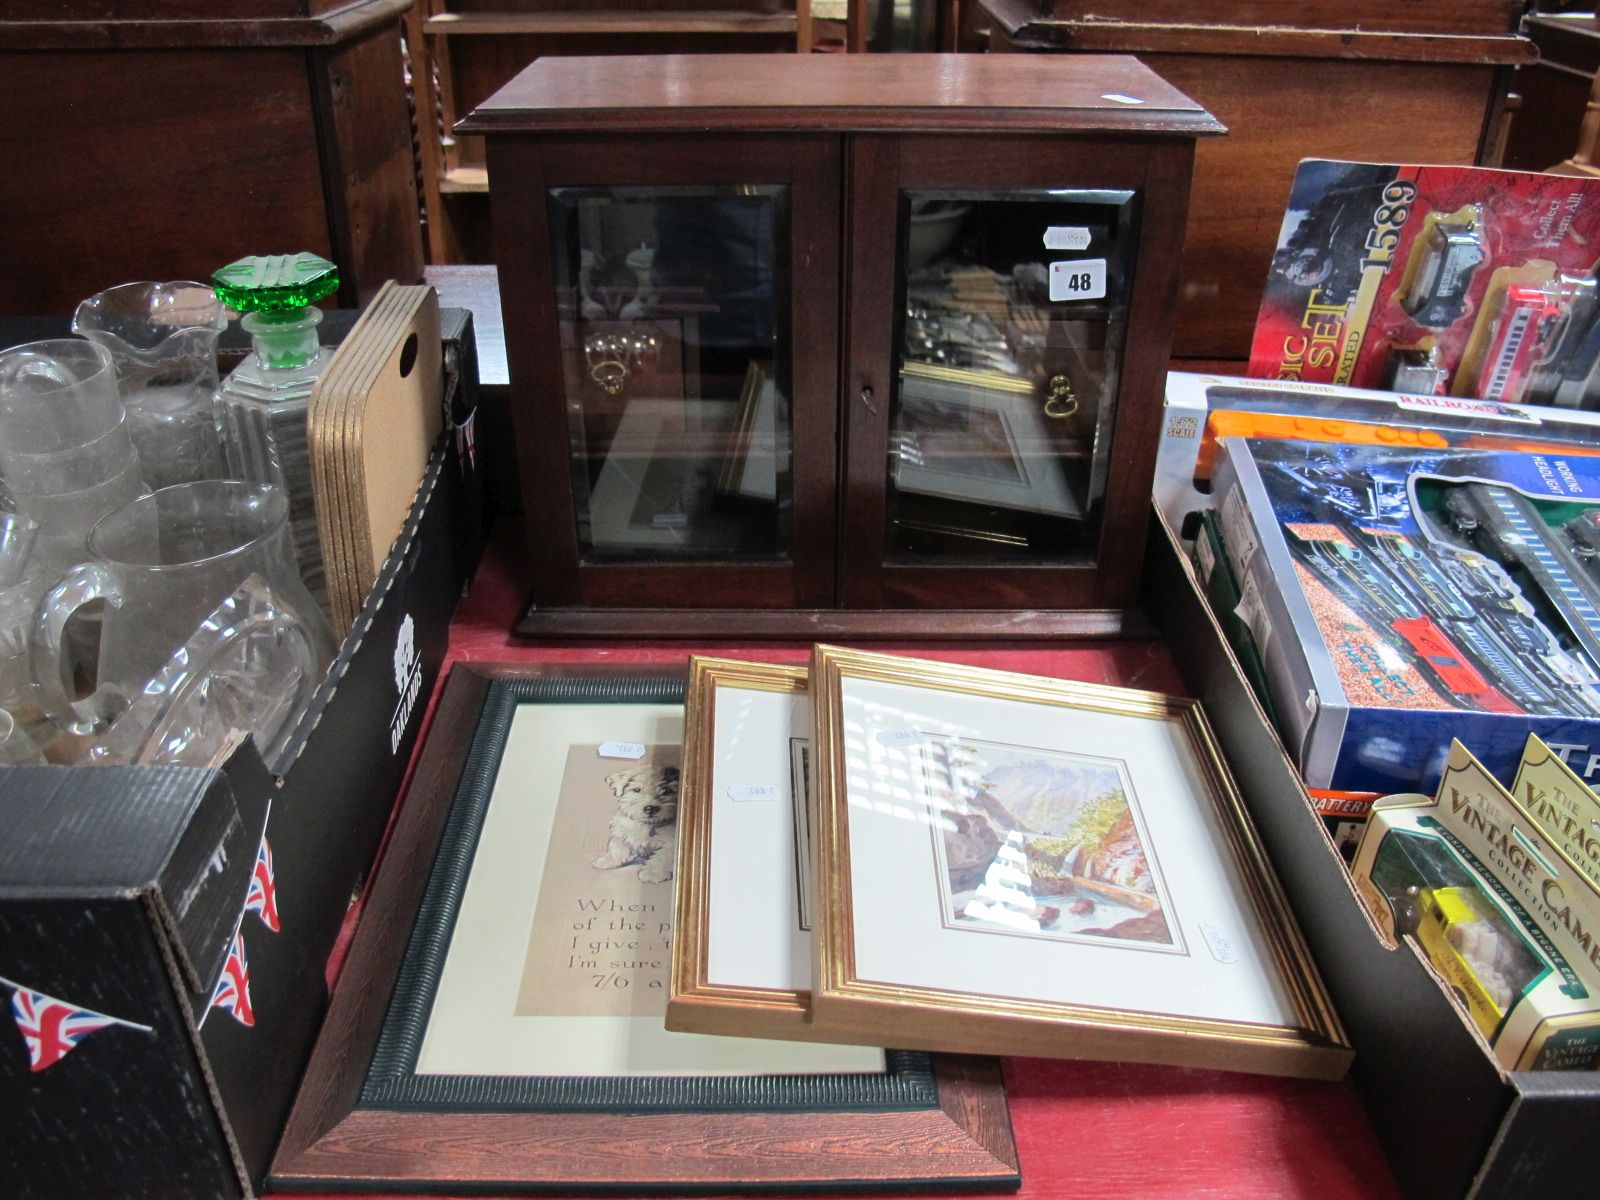 Lot 48 - An Edwardian Smokers Cabinet, pair of watercolours and Mac terrier print. (4)